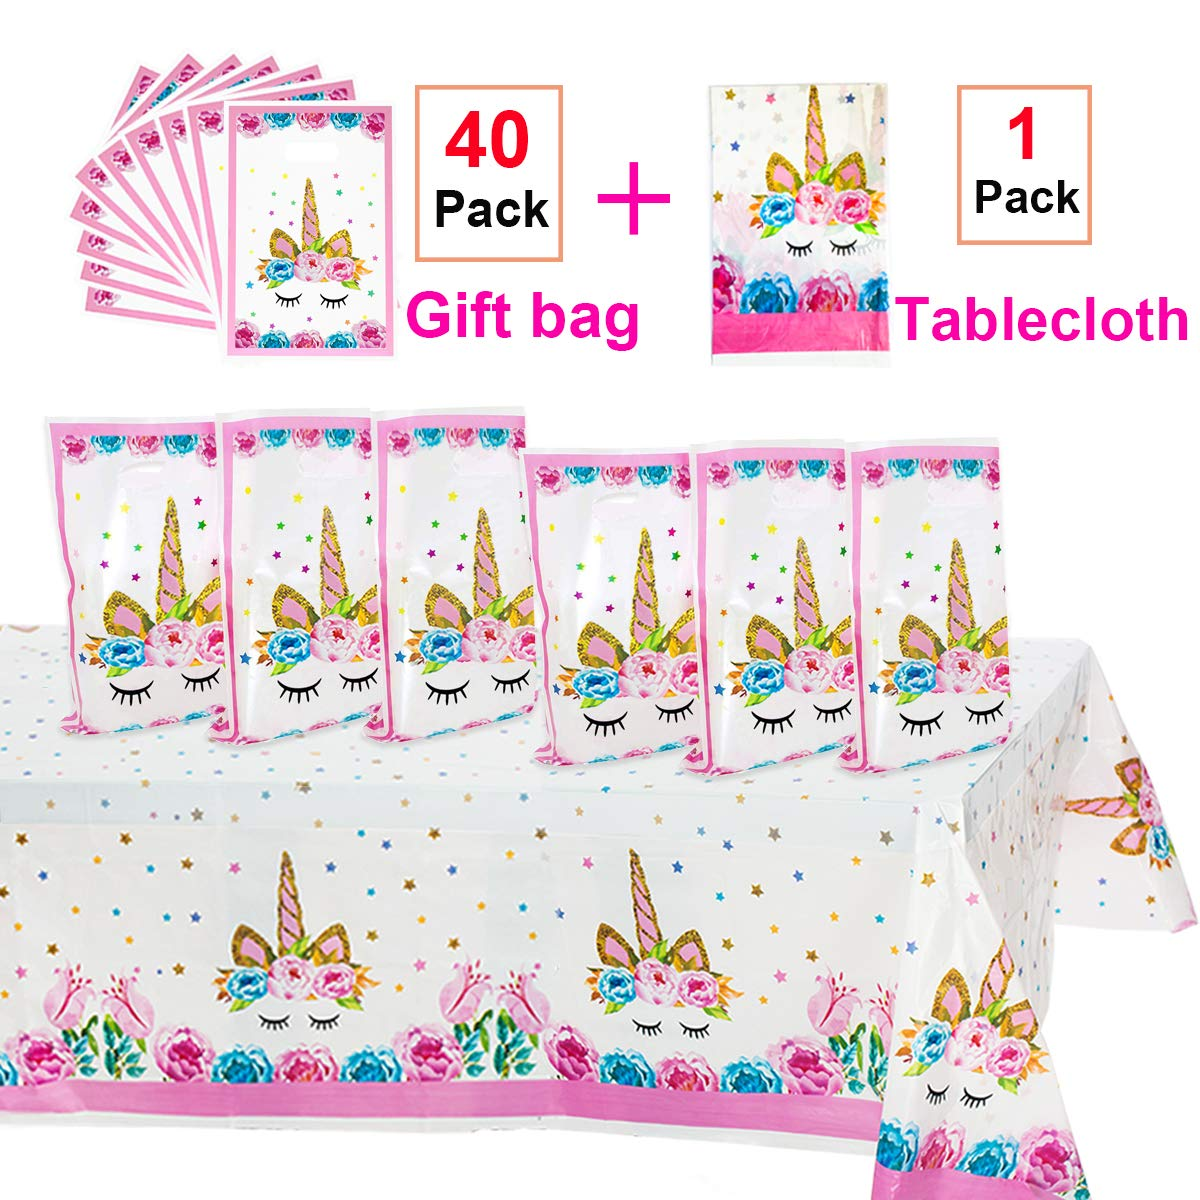 Unicorn Party Supplies,40 Pack Unicorn Plastic Party Bags & Unicorn Plastic Tablecloth Set,Unicorn Goodies Gift Treat Bags for Candy,Kids Girls ...